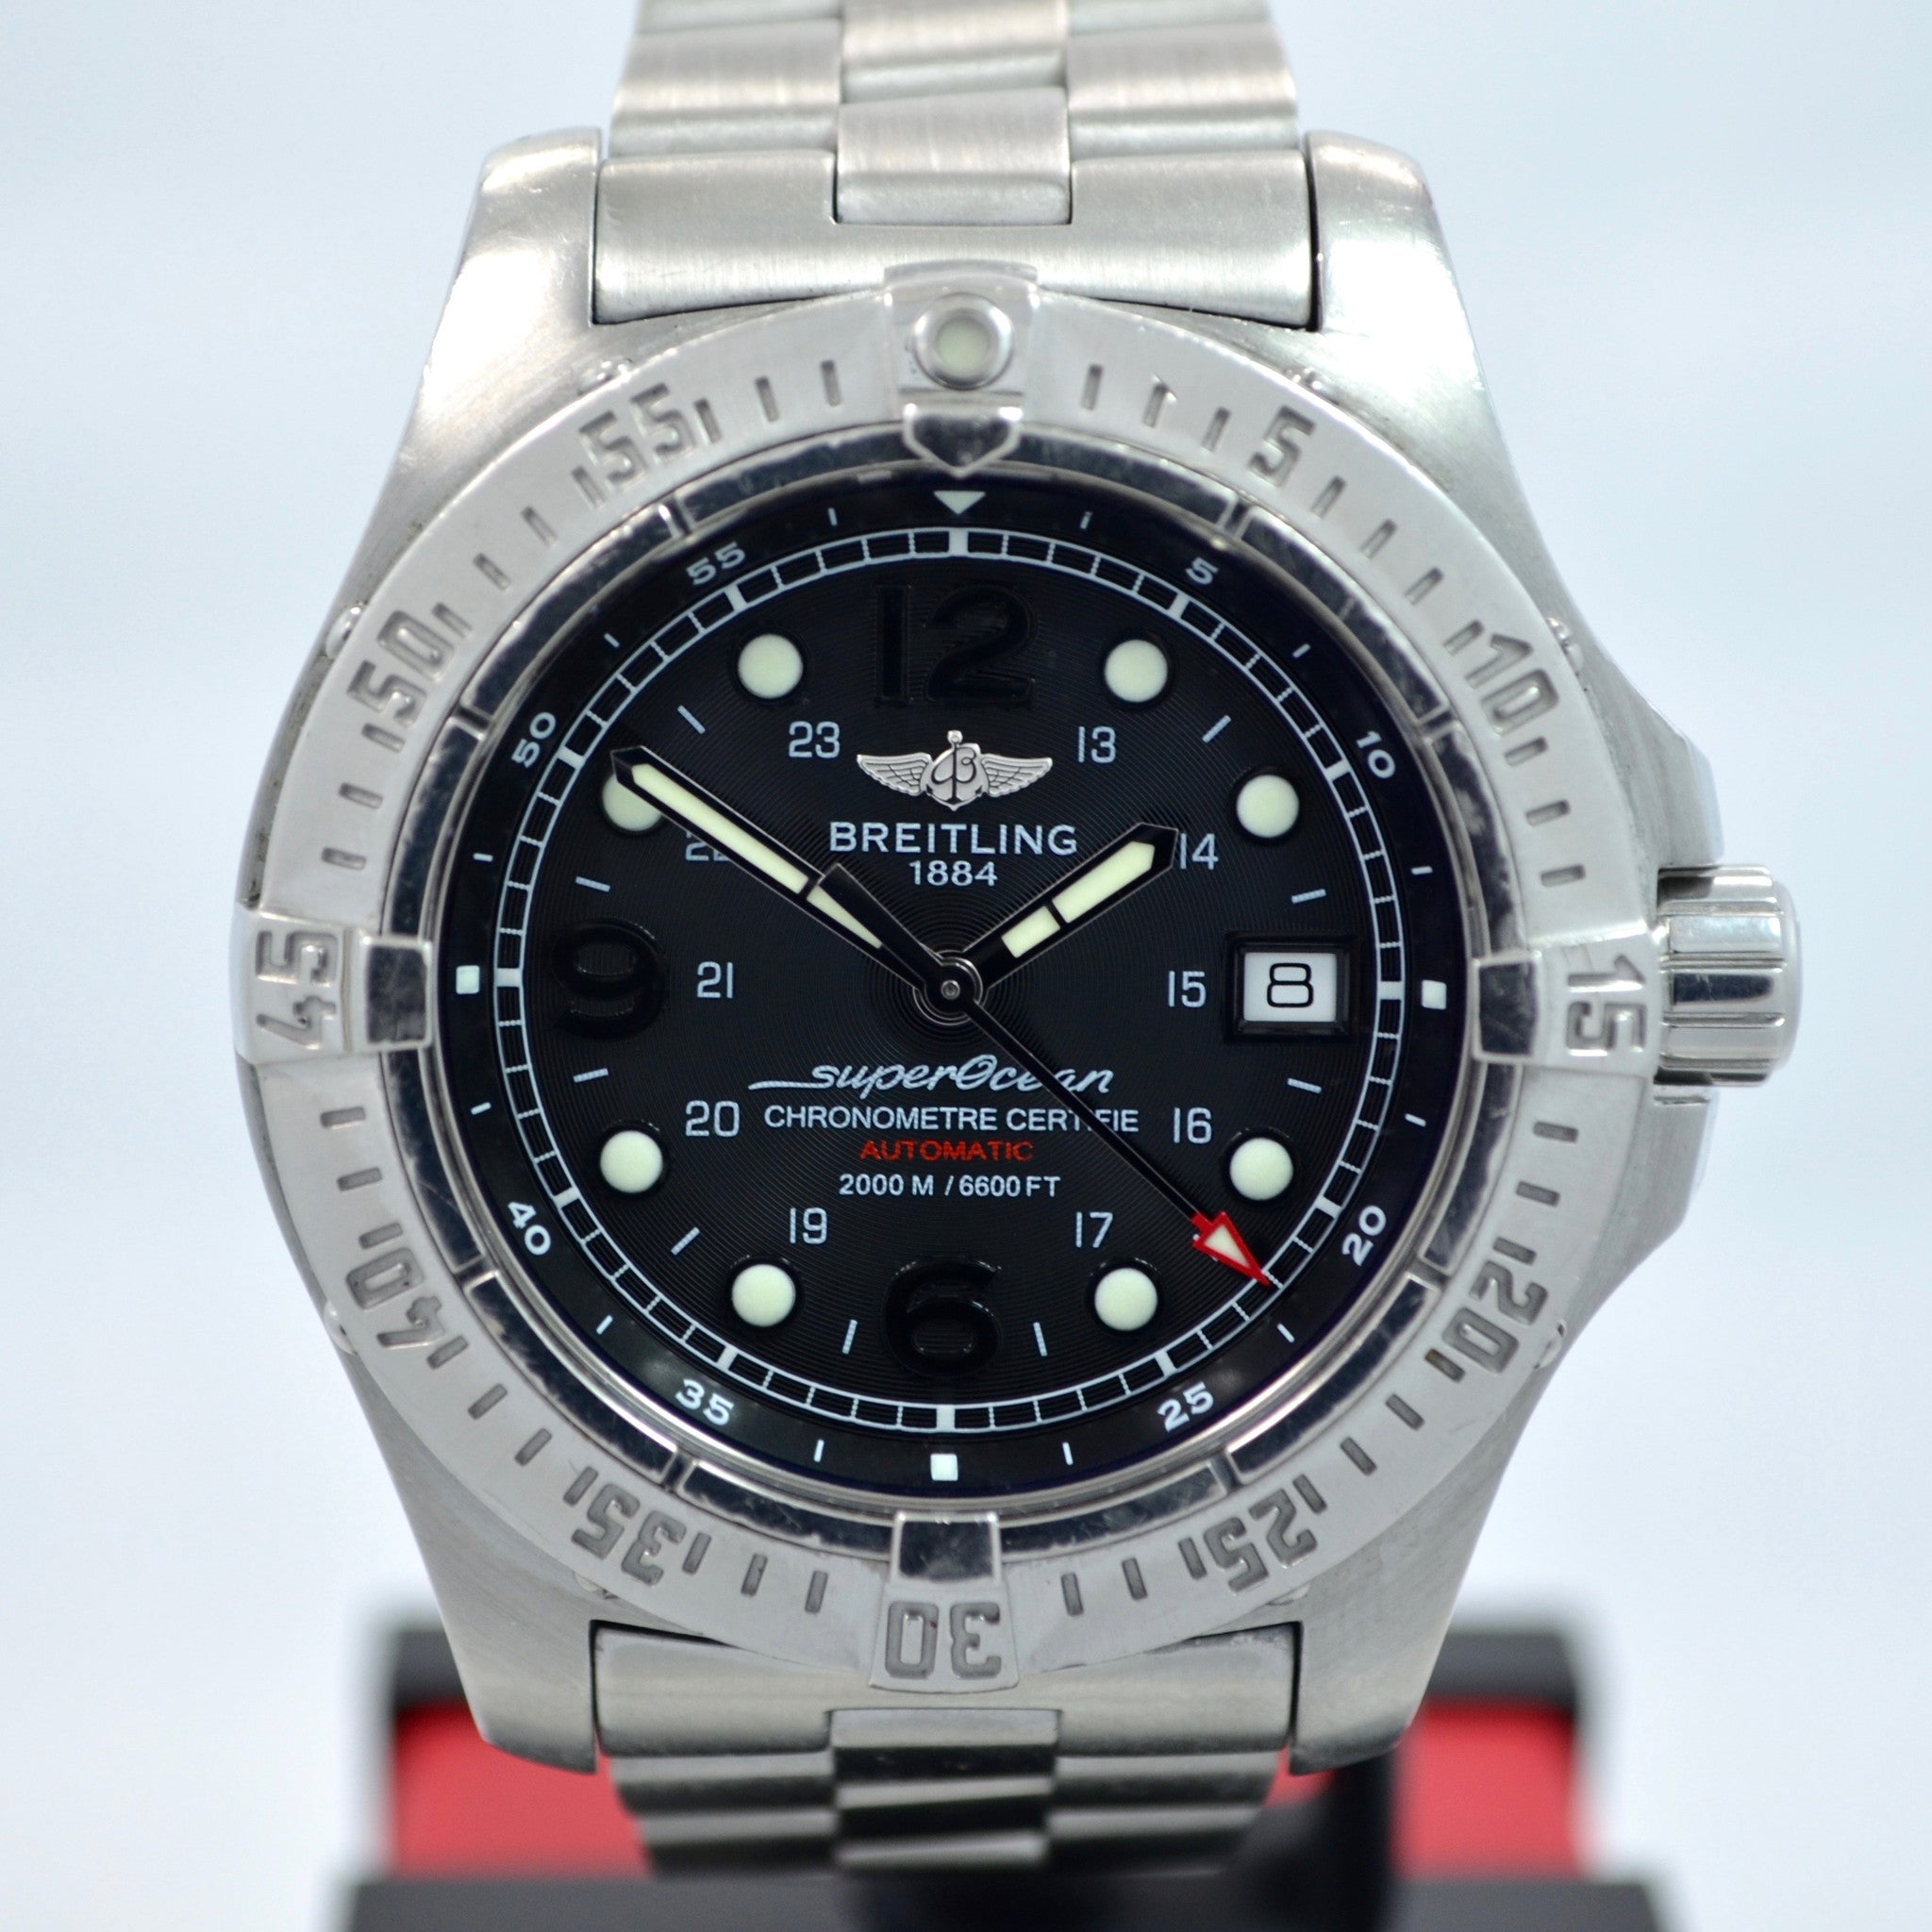 Breitling SuperOcean Steelfish A17390 Automatic Steel Black 44mm Wristwatch - Hashtag Watch Company